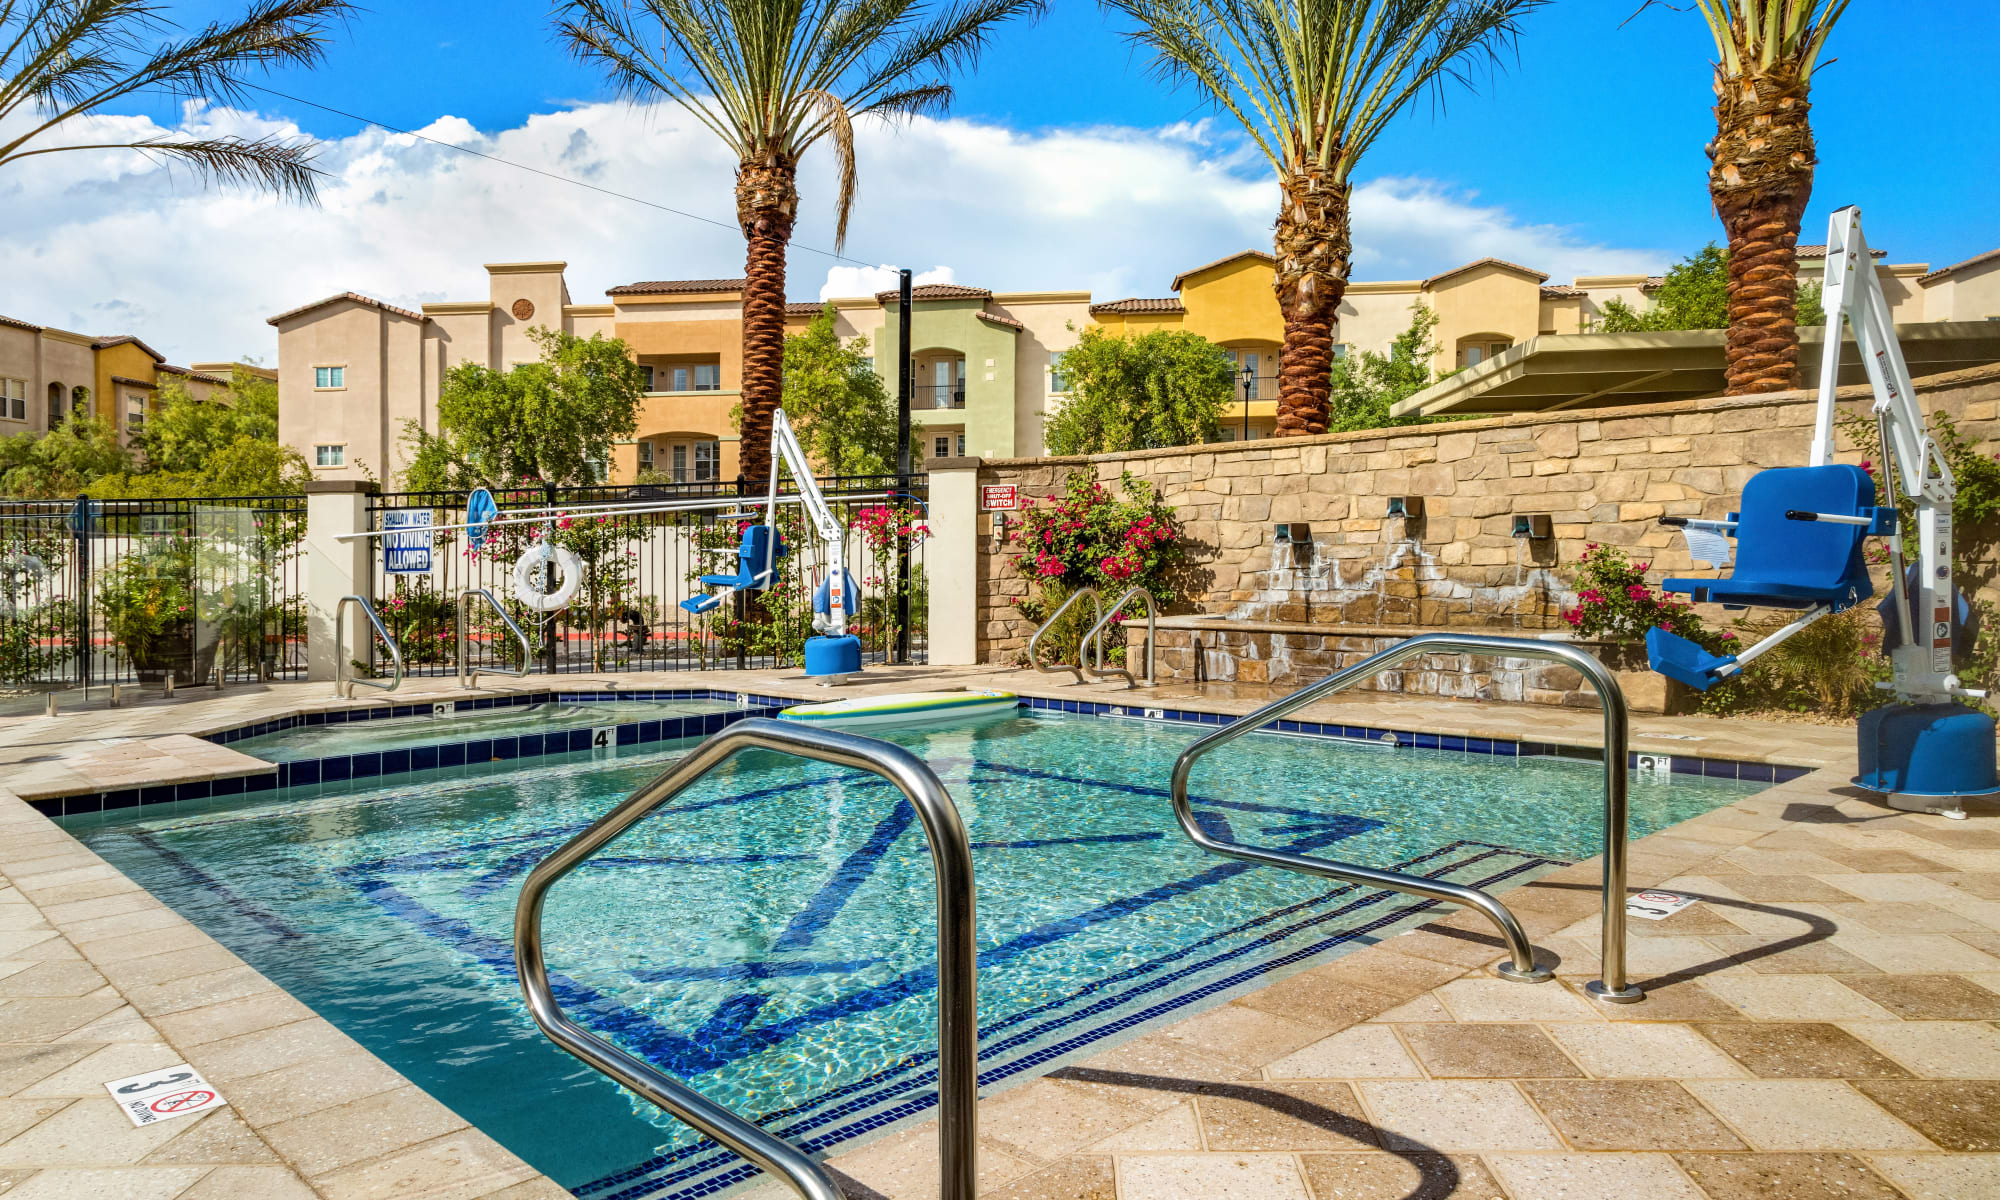 Outdoor patio and pool at The Park at Modesto Independent Living Community